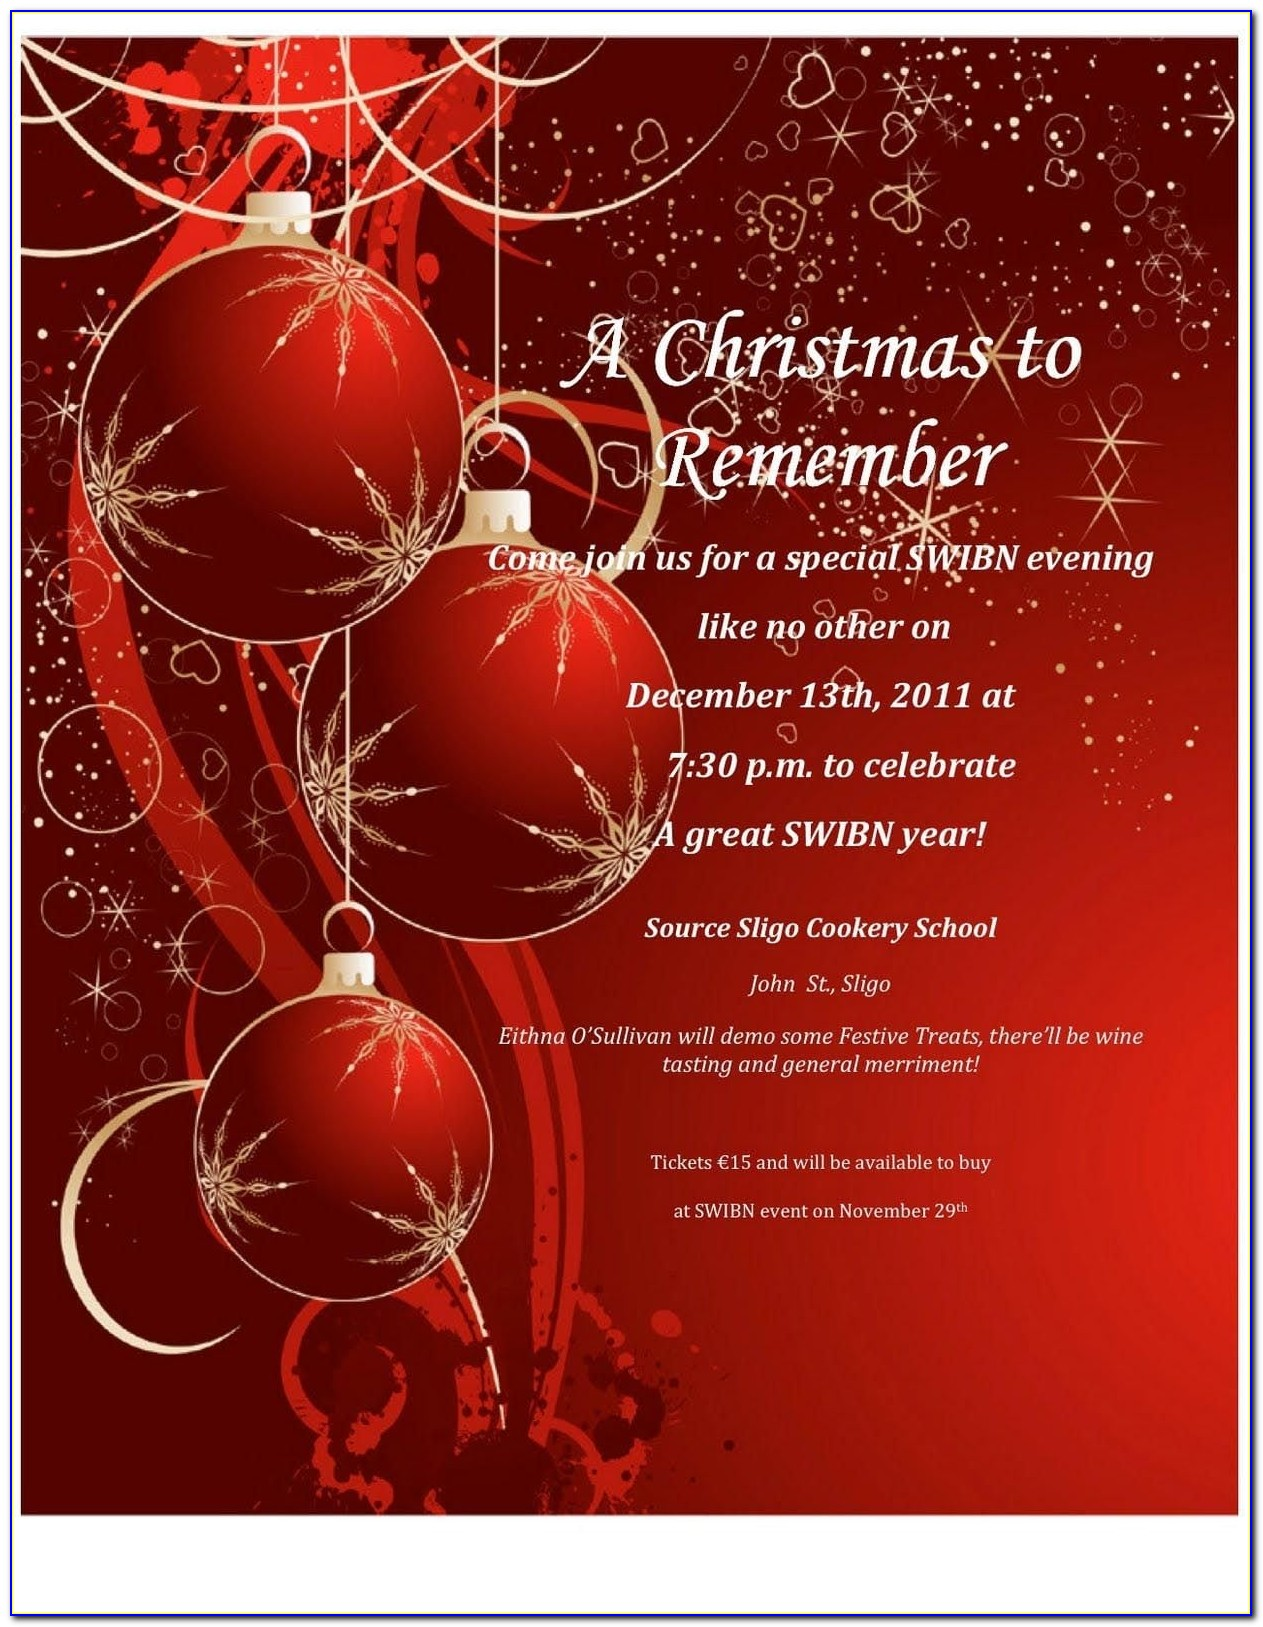 Christmas Party Invitation Templates Free Download With Regard To Free Christmas Invitations Templates To Download